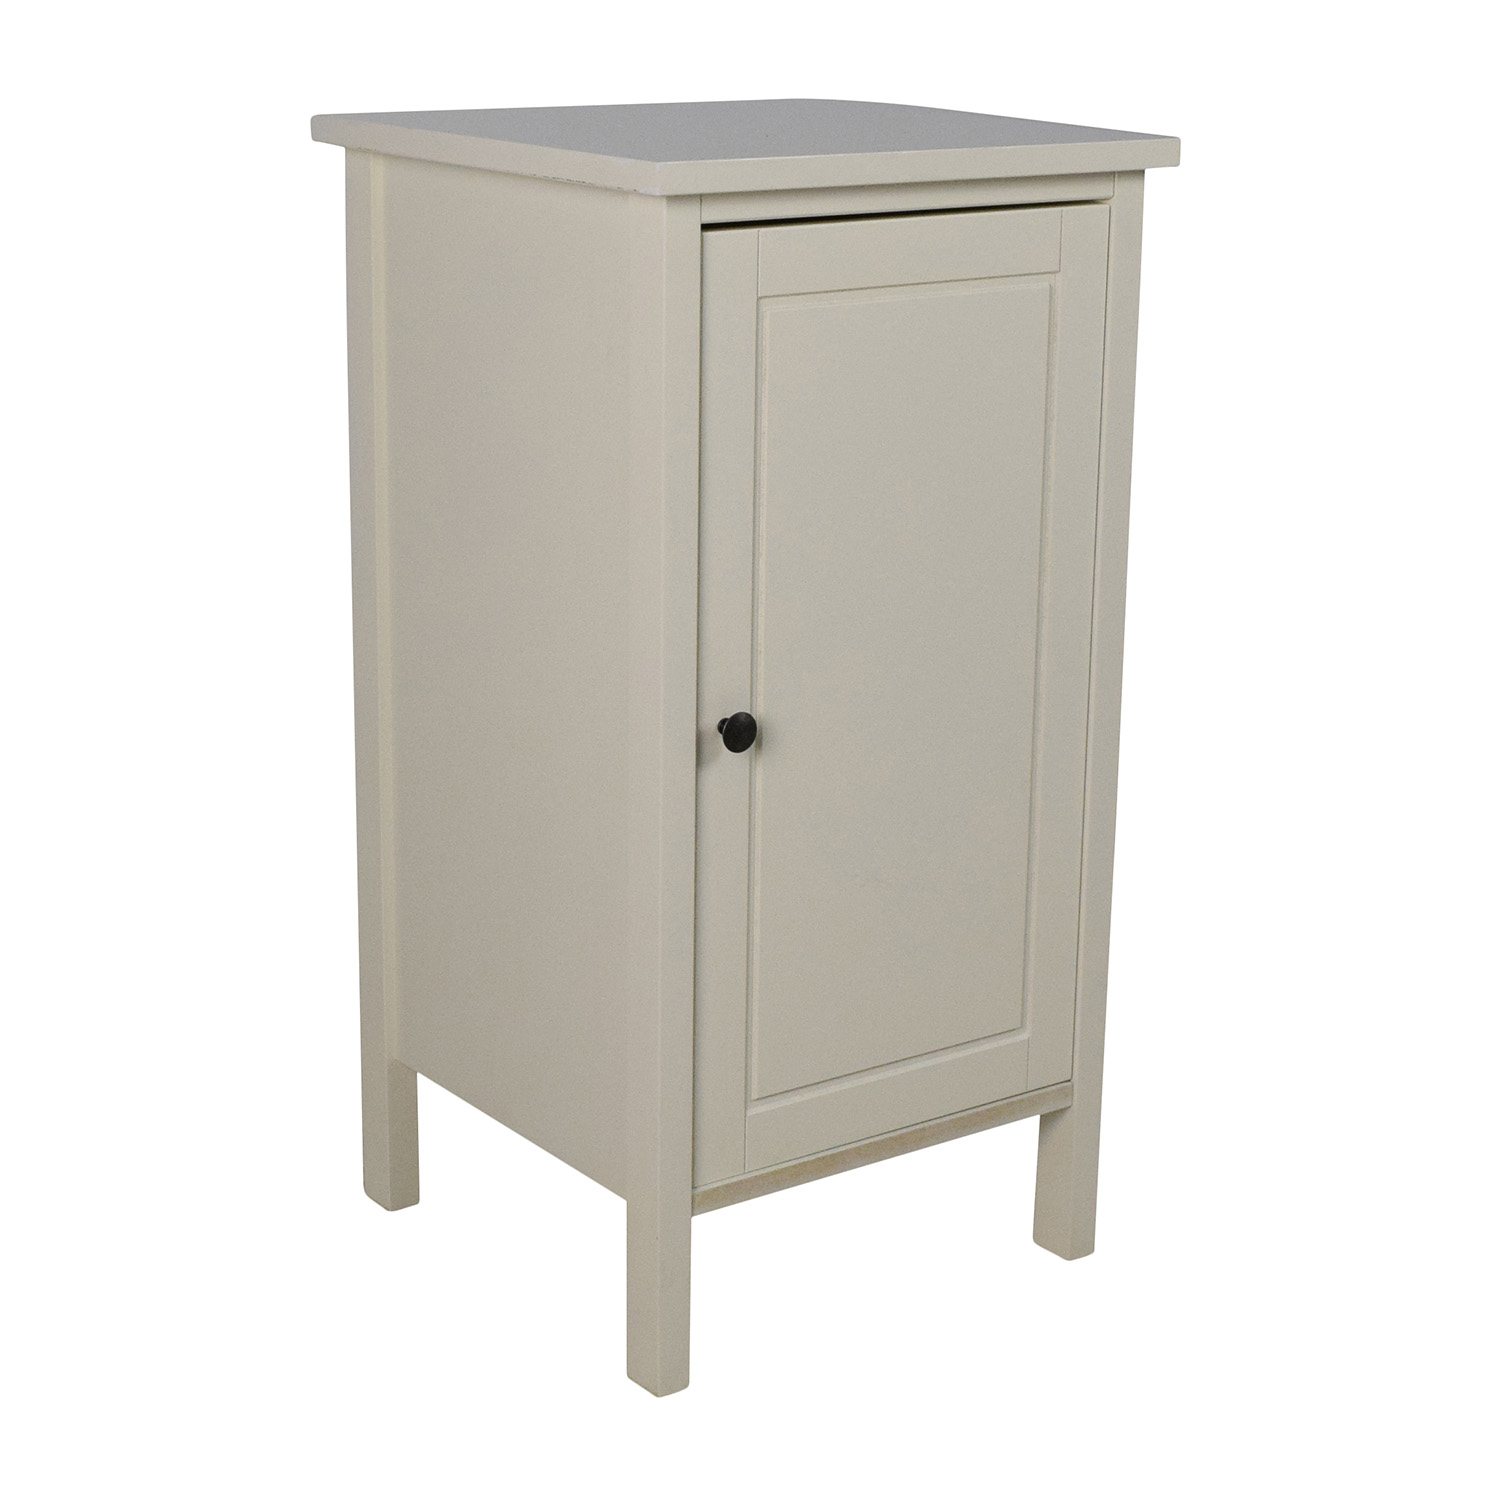 86 off ikea ikea hemnes bedside table tables for Ikea comodino hemnes